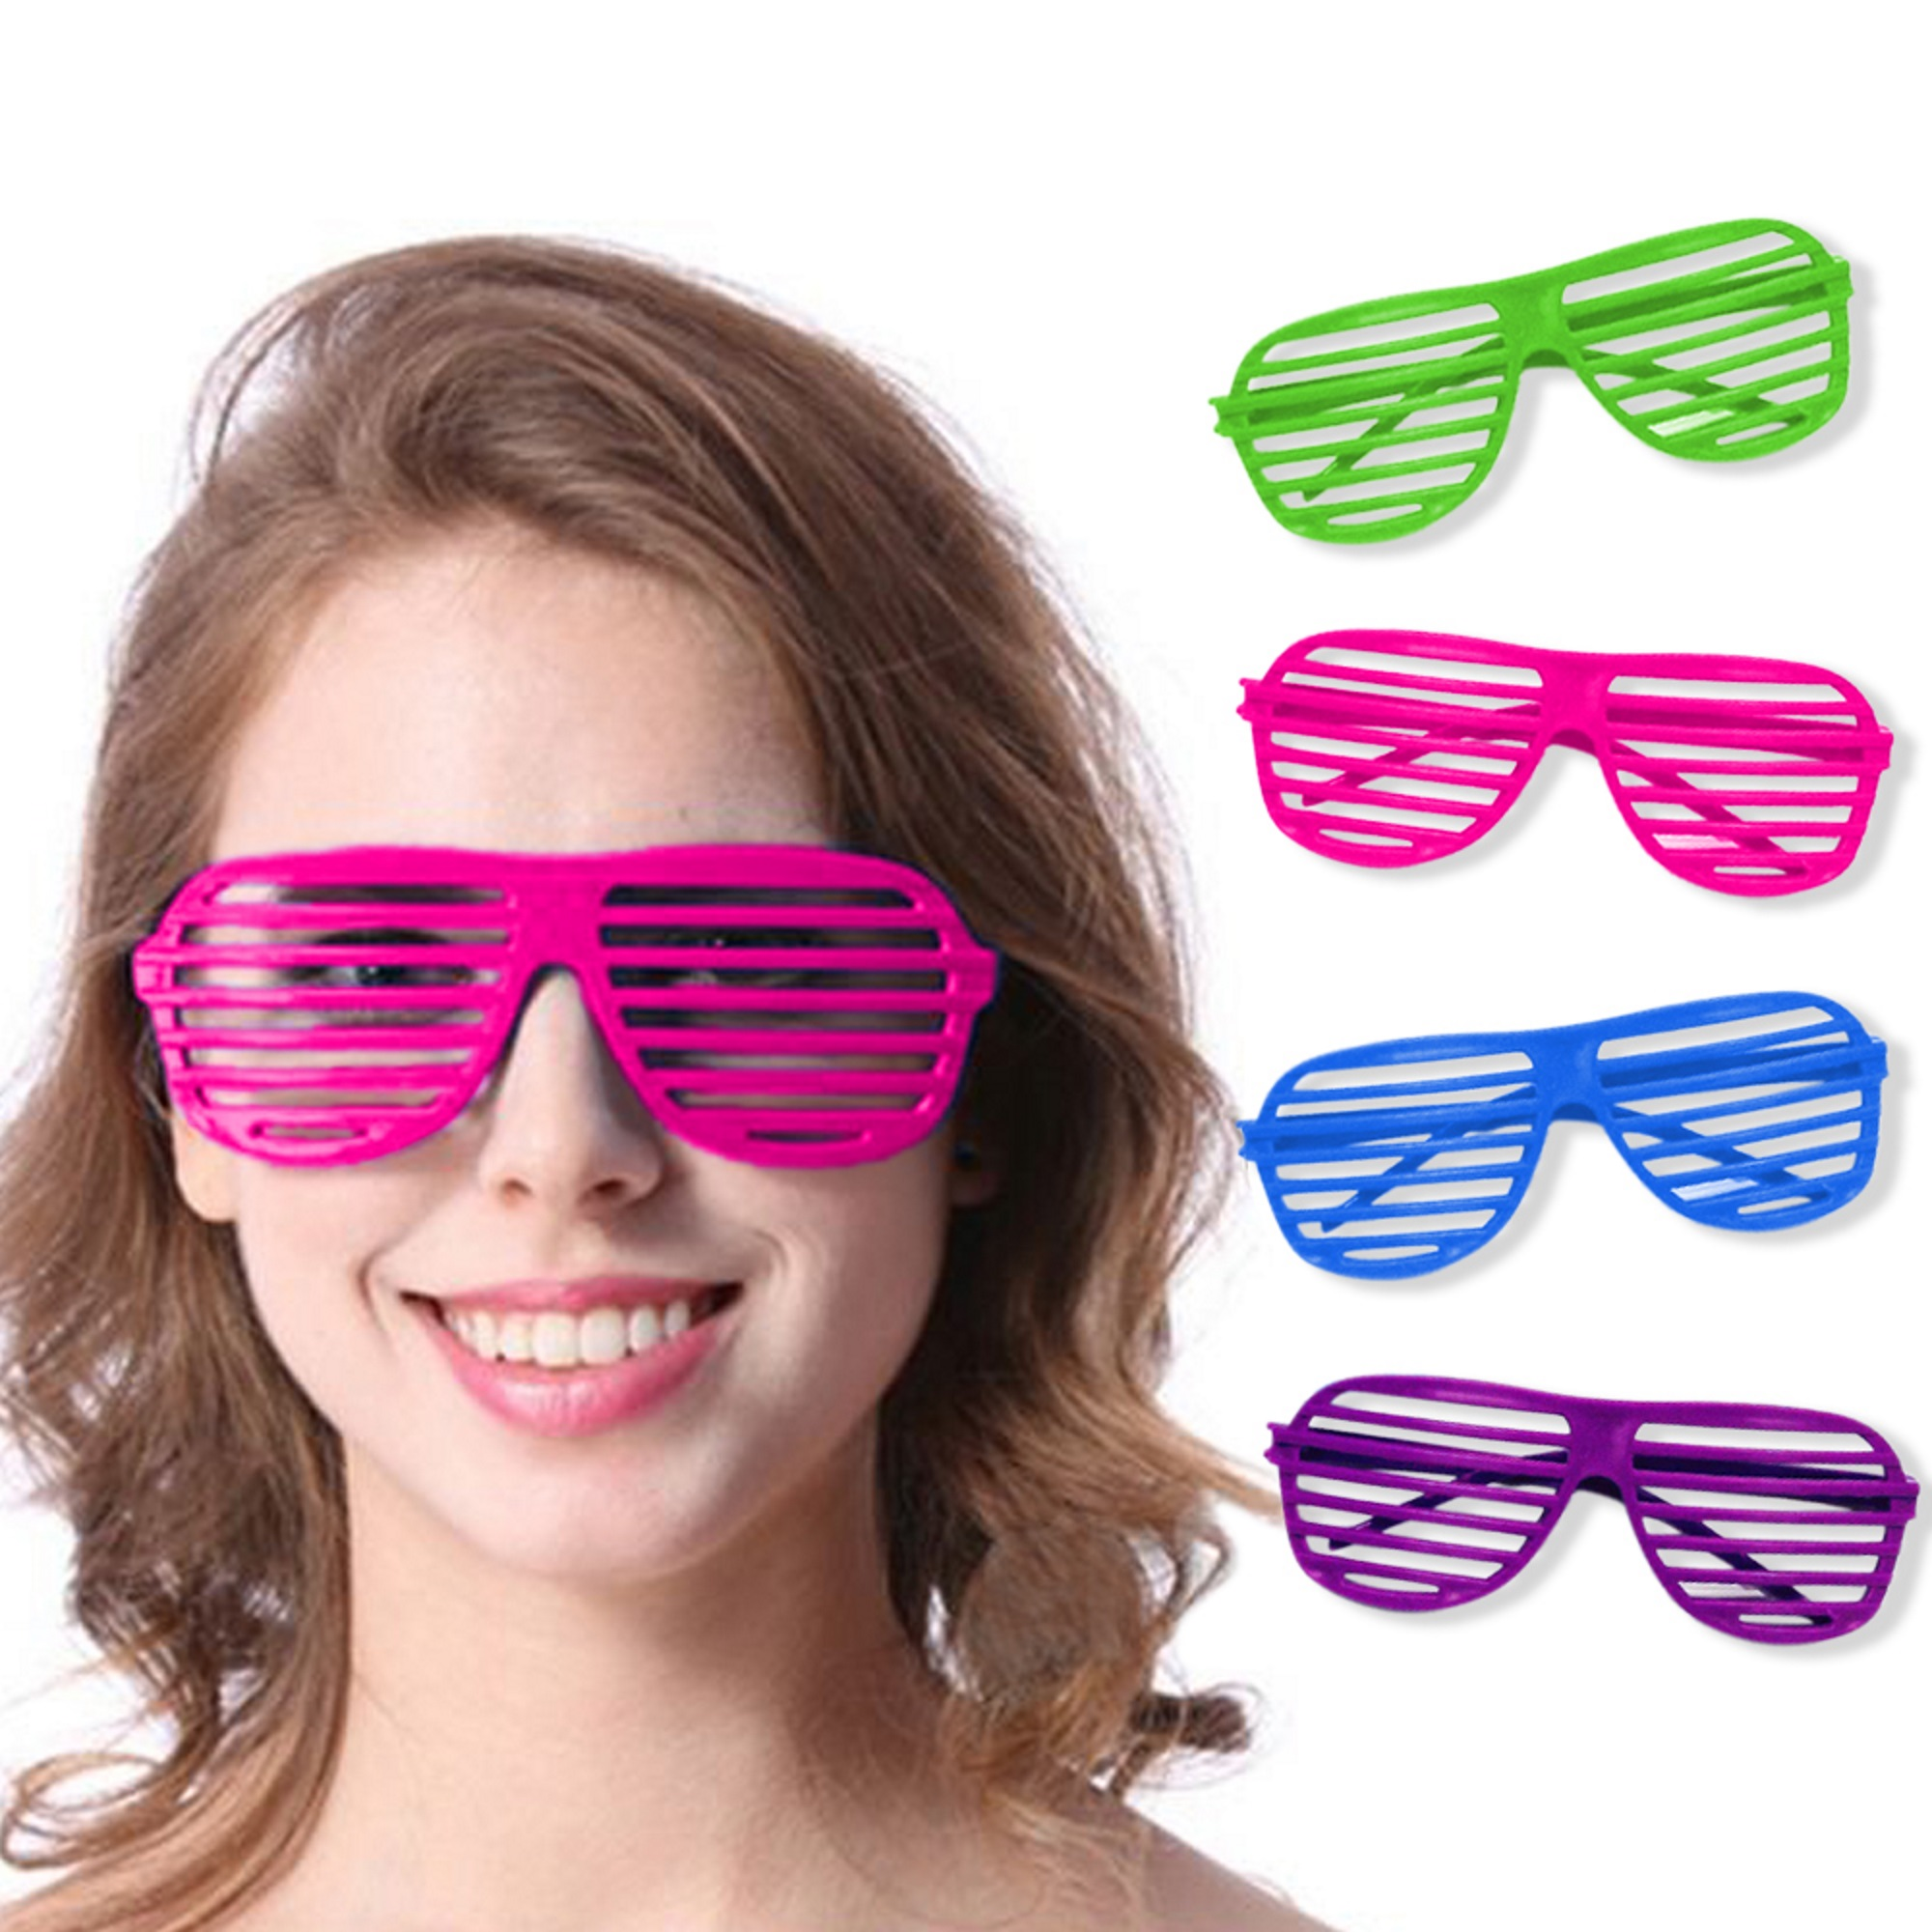 9eab012330a Novelty Place  Neon Color  80 s Party Shutter Glasses Slotted Shading Toy  Sunglasses for Kids  amp  Adults - 4 Colors (12 Pairs) - Walmart.com